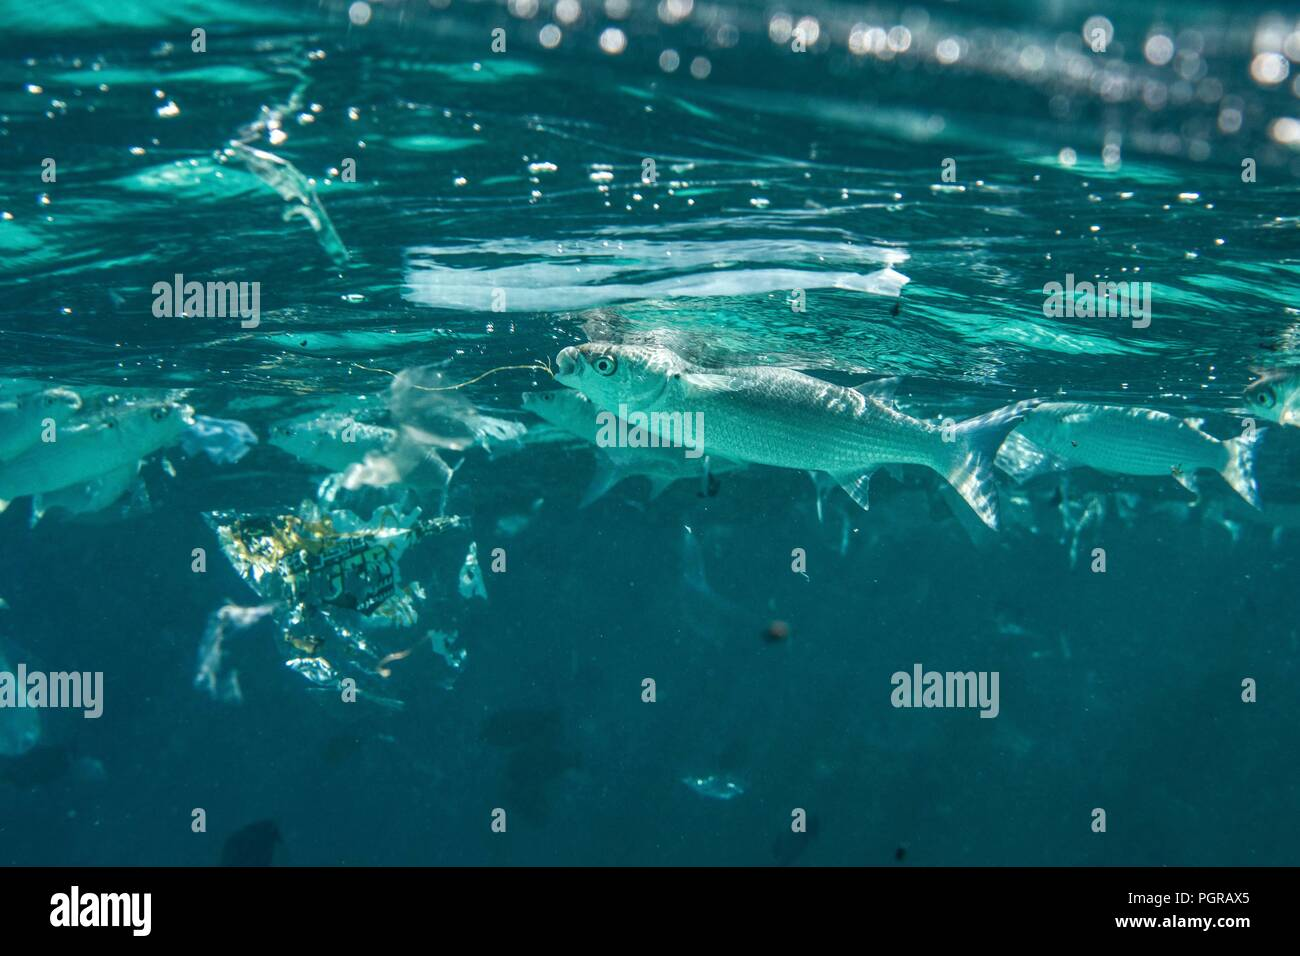 A shoal of Grey Mullets ingest plastic pollution from the surface of the ocean in Egypt - Stock Image